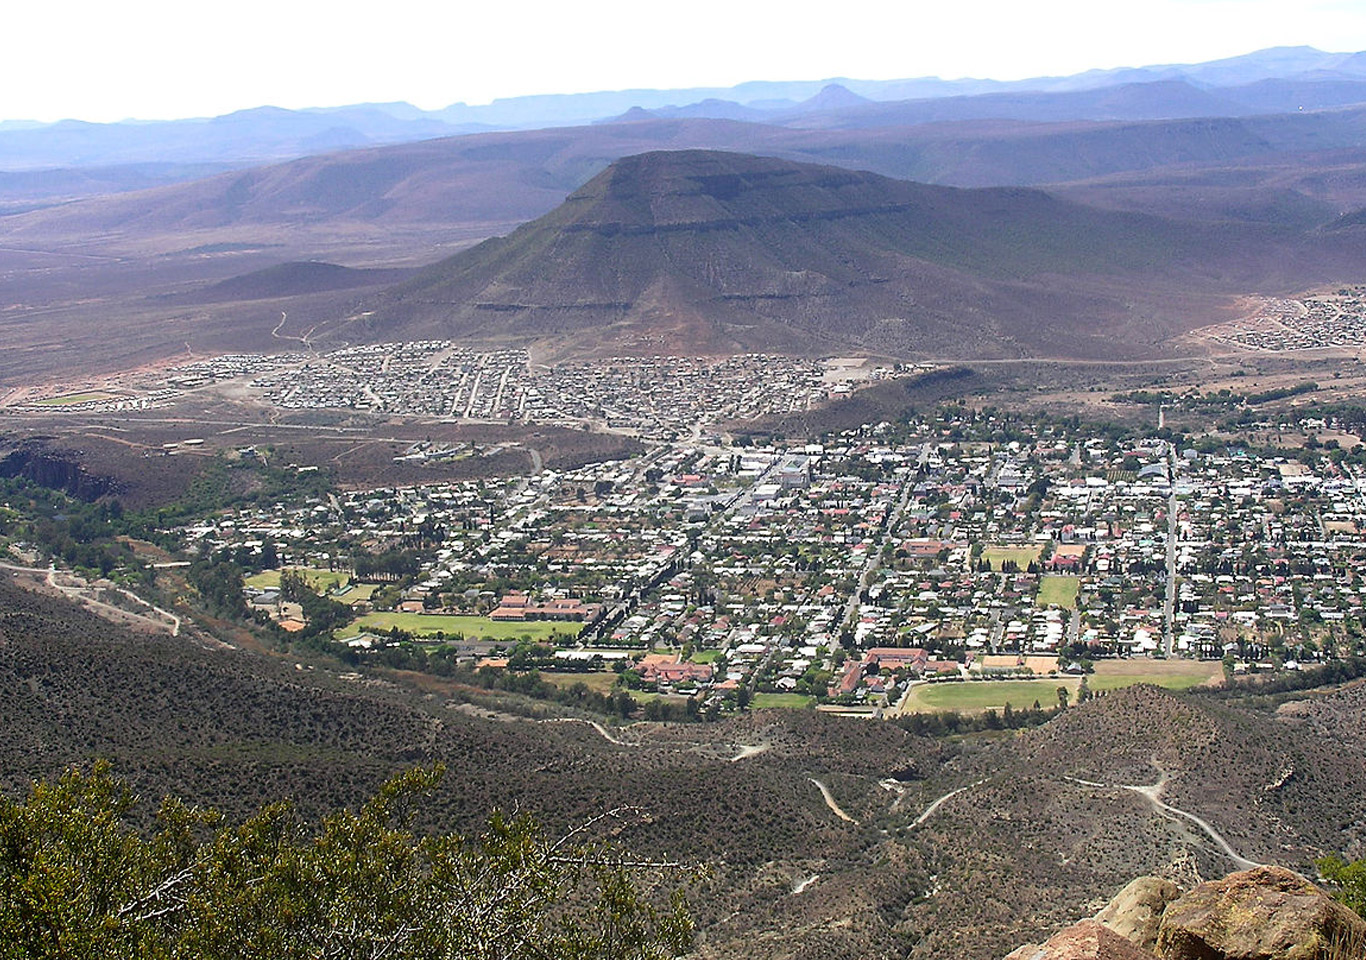 Over looking the town of Graaff Reinet, an amazing ballooning experience.